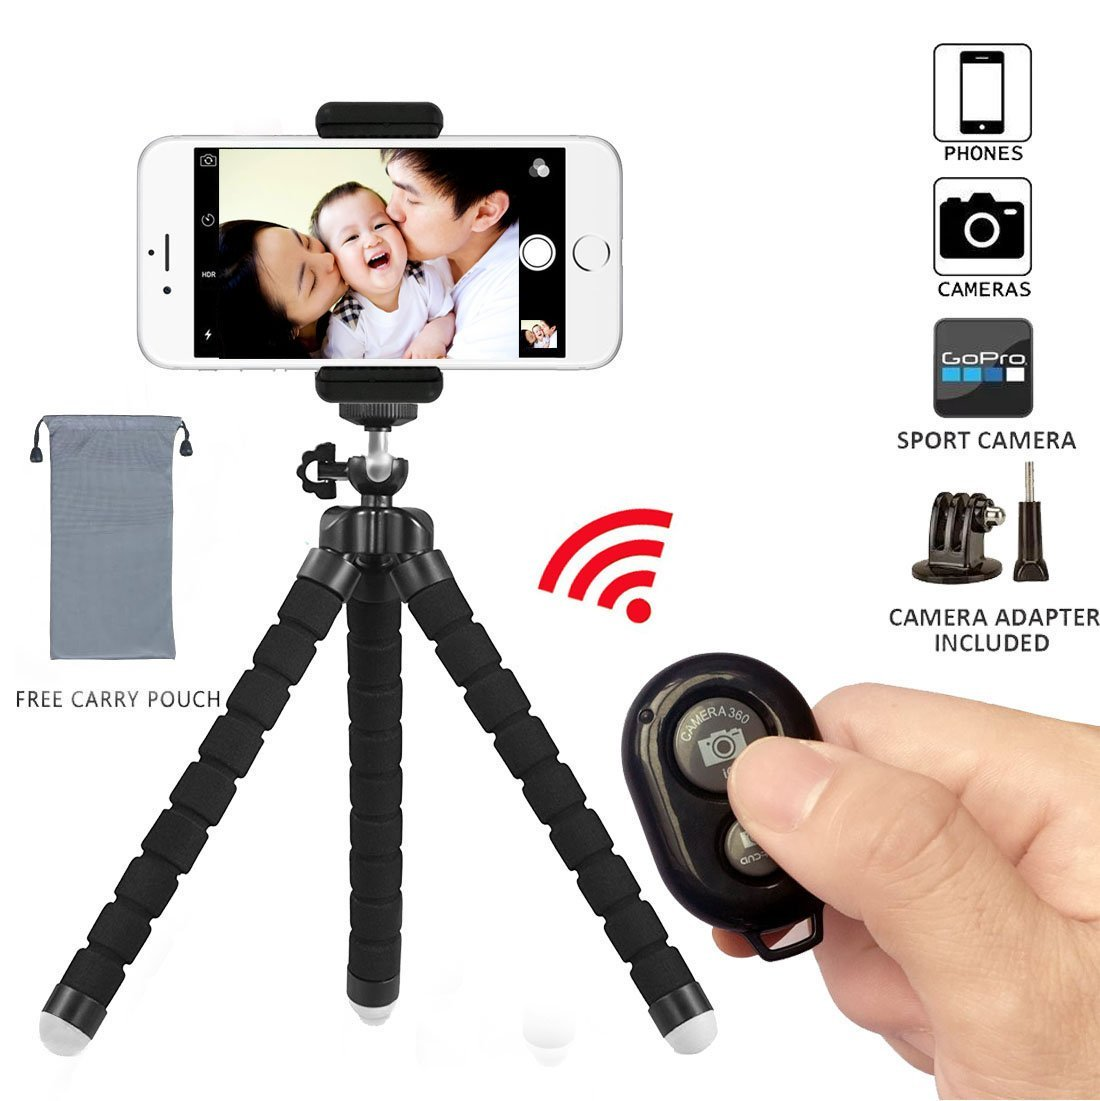 Phone Tripod, Flexible Mini Phone Stand with Bluetooth Camera Remote, Portable and Adjustable Camera Stand Holder with Remote and Universal Clip for iPhone, Android Phone, Camera, Sports Camera